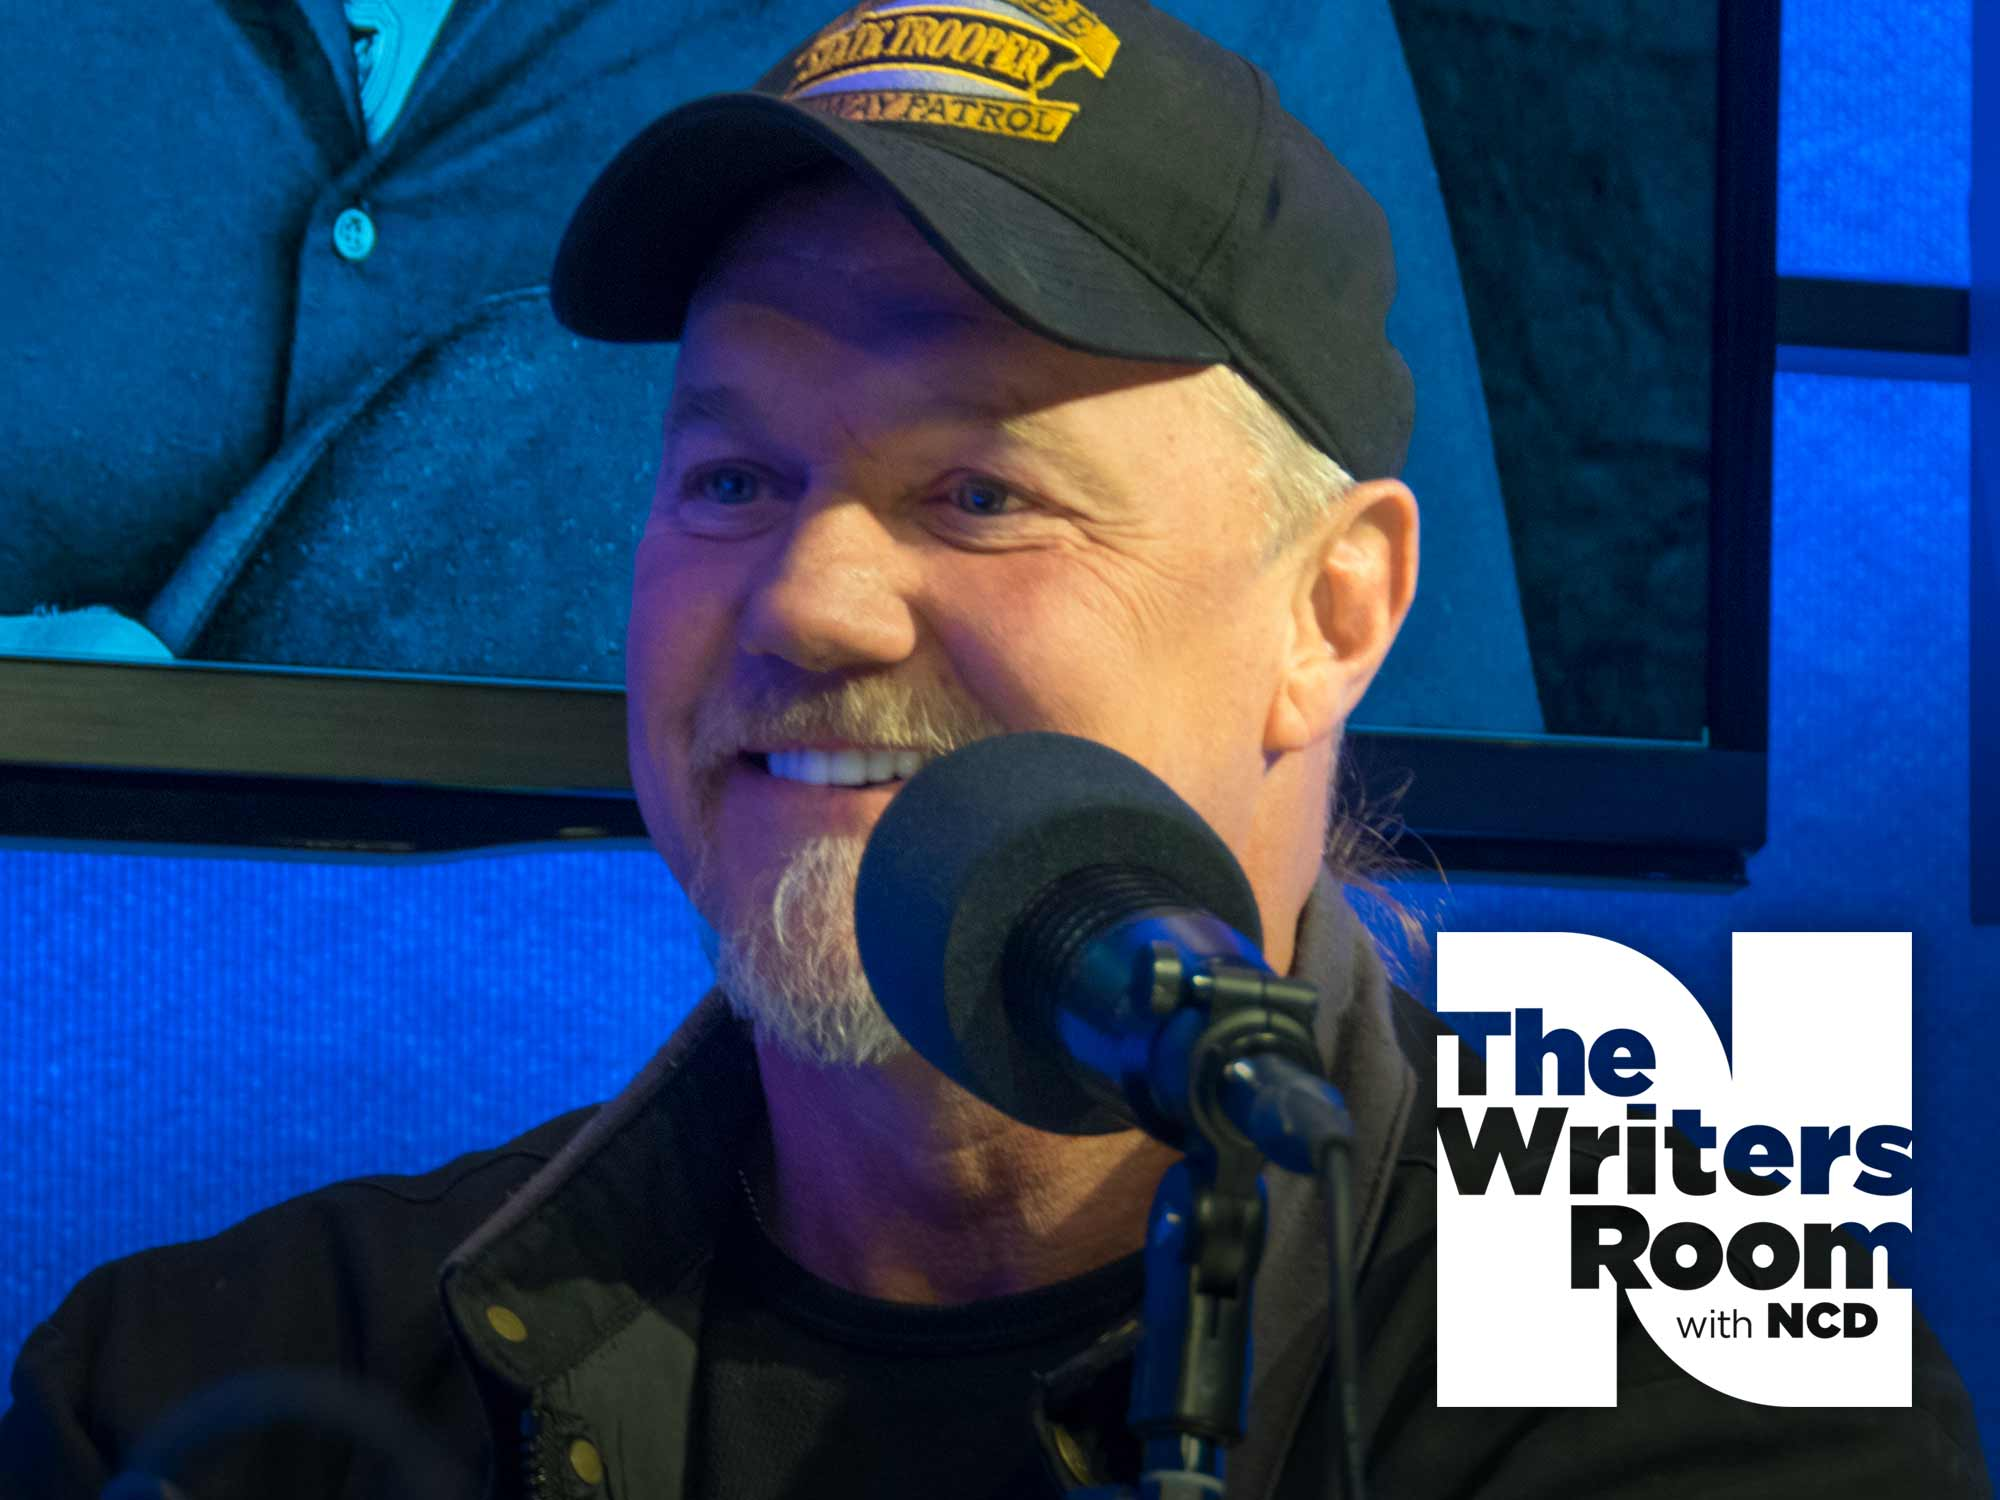 Trace Adkins Talks About His New Album, Upcoming 12th USO Tour, Proudest Career Accomplishment & More